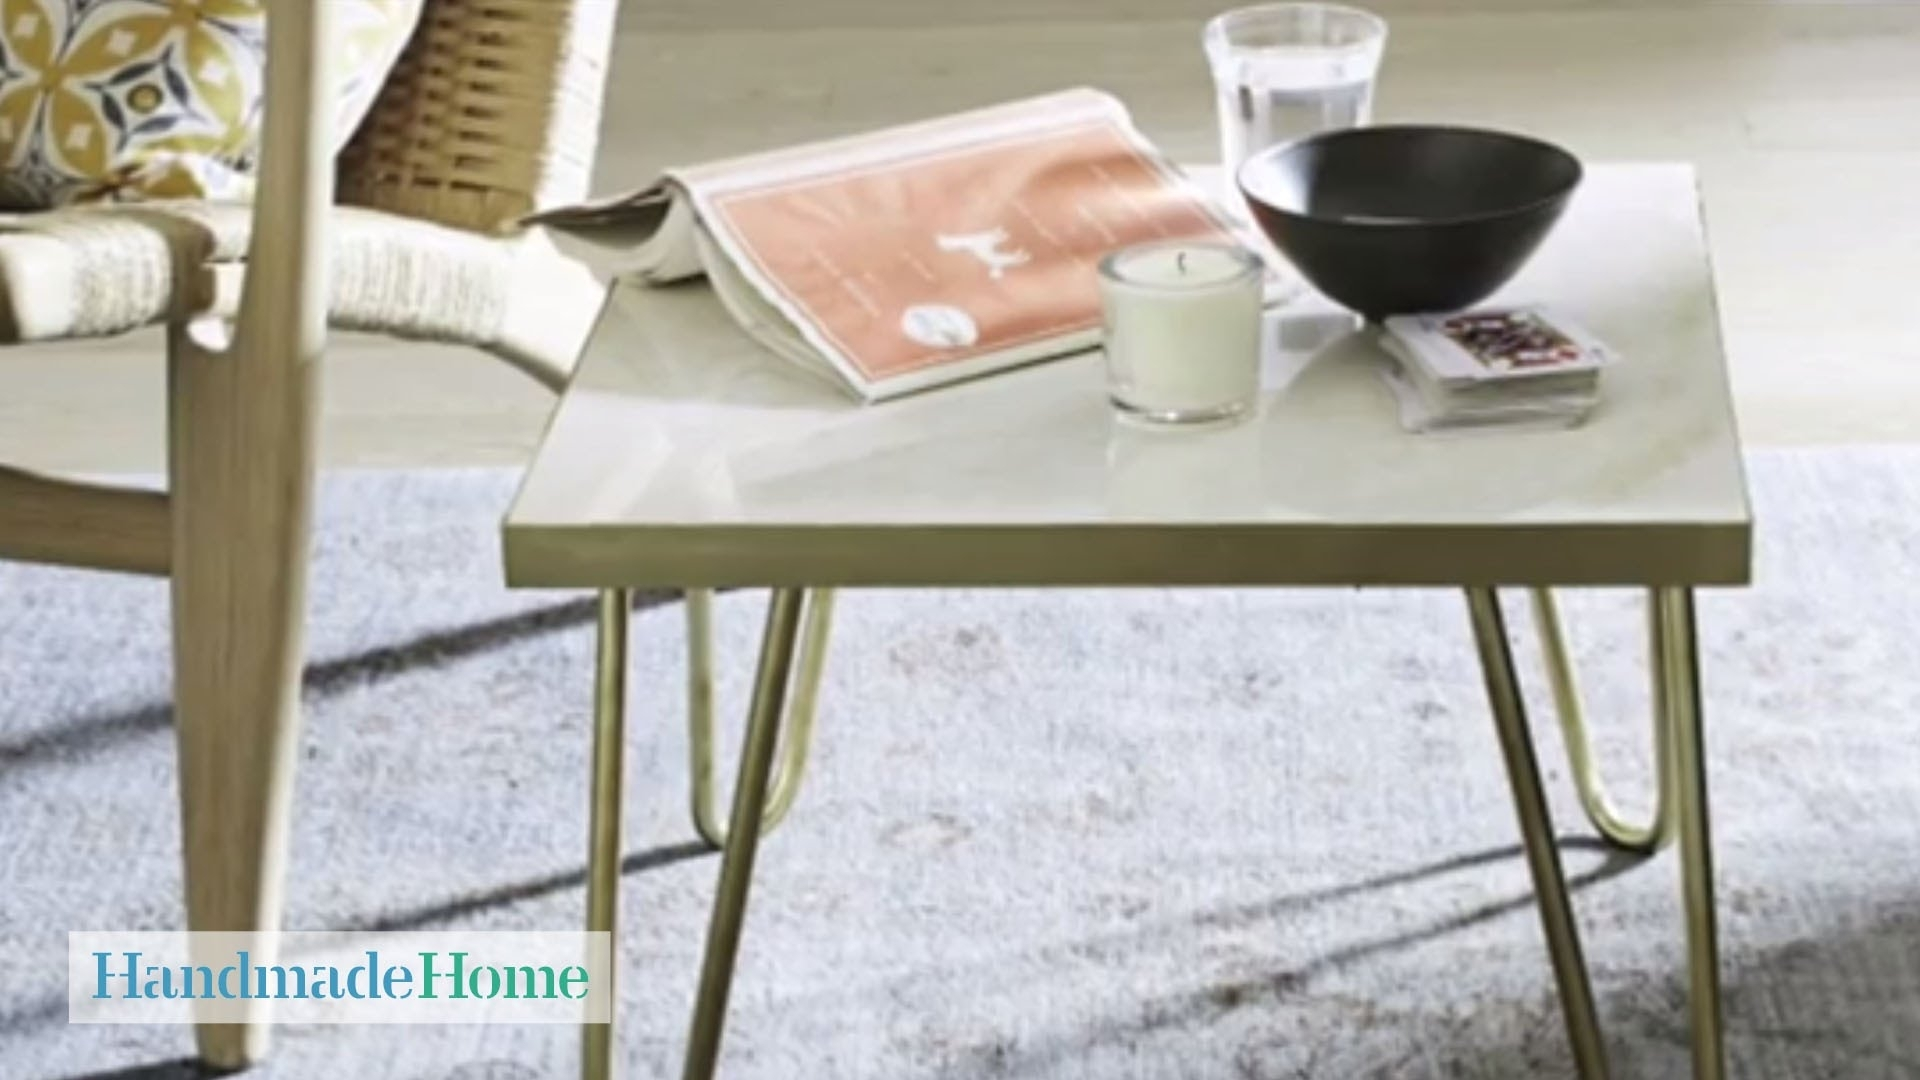 Brass-Leg Side Table Project - Handmade Home - Martha Stewart - Youtube with regard to Brass Iron Cube Tables (Image 7 of 30)